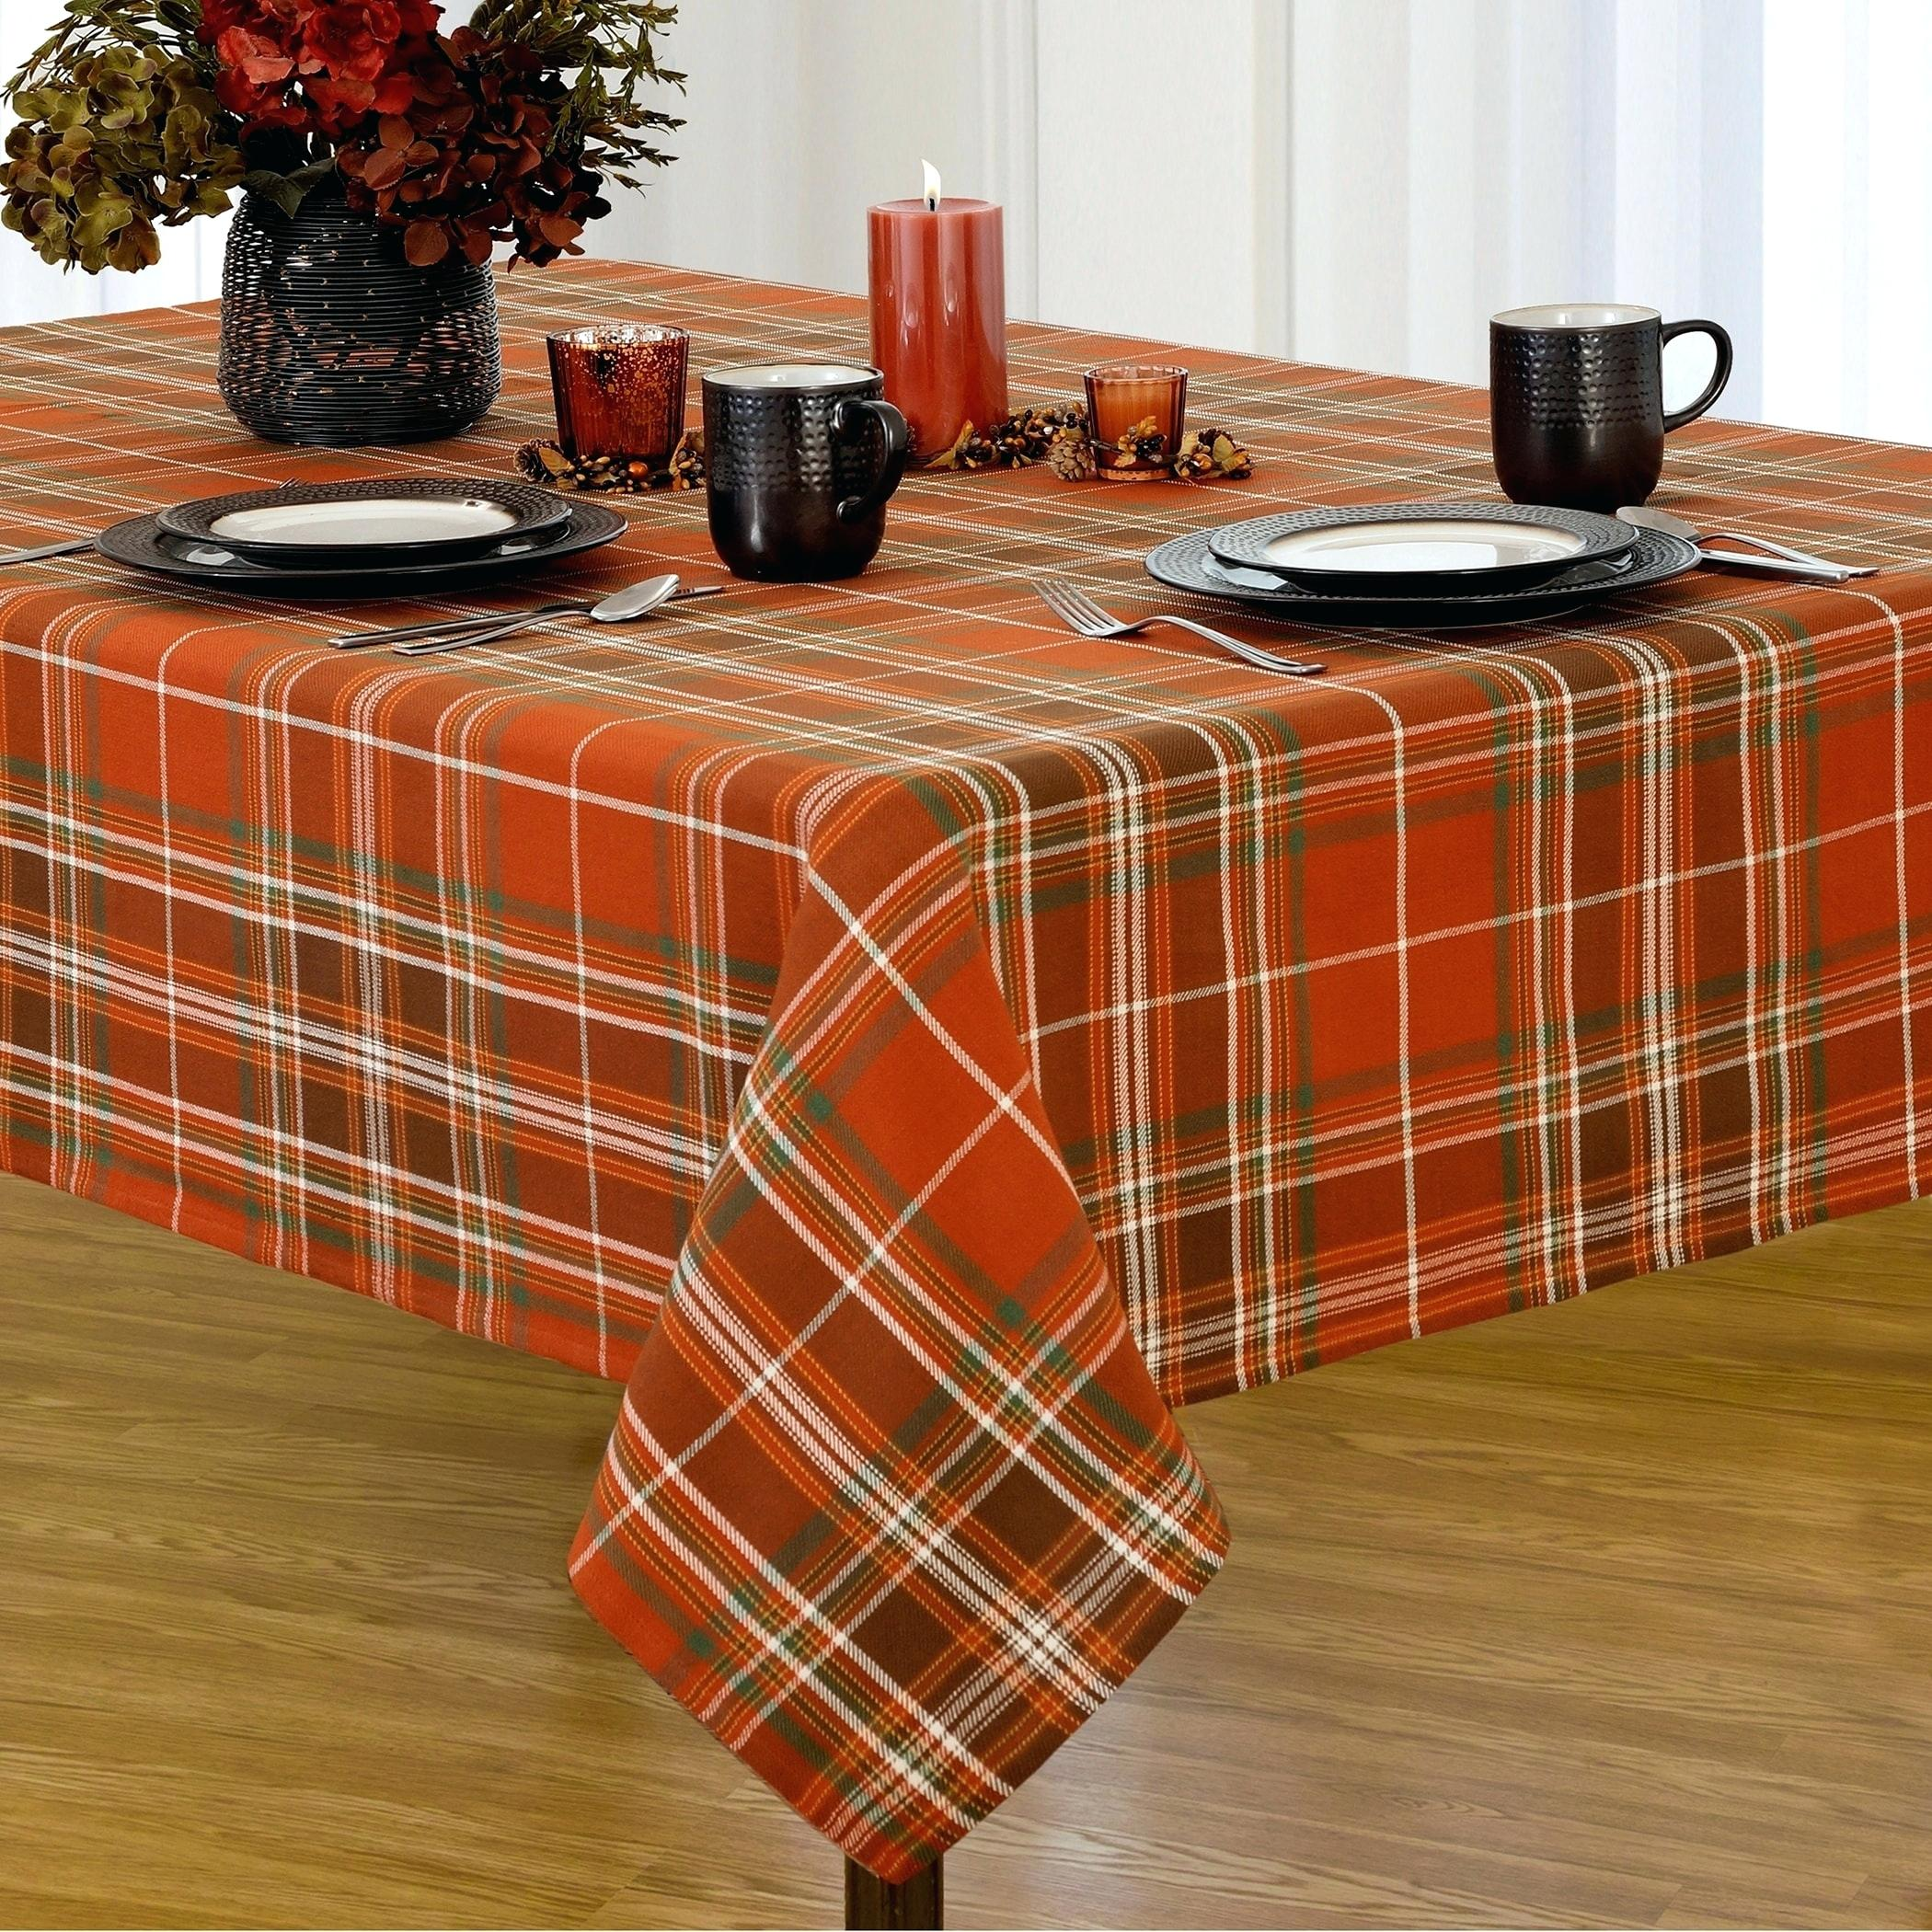 round accent table covers end cloth cover plaid fabric harvest cotton woven tablecloth for small freya shaped entry hall desk with drawers diy coffee better homes and gardens